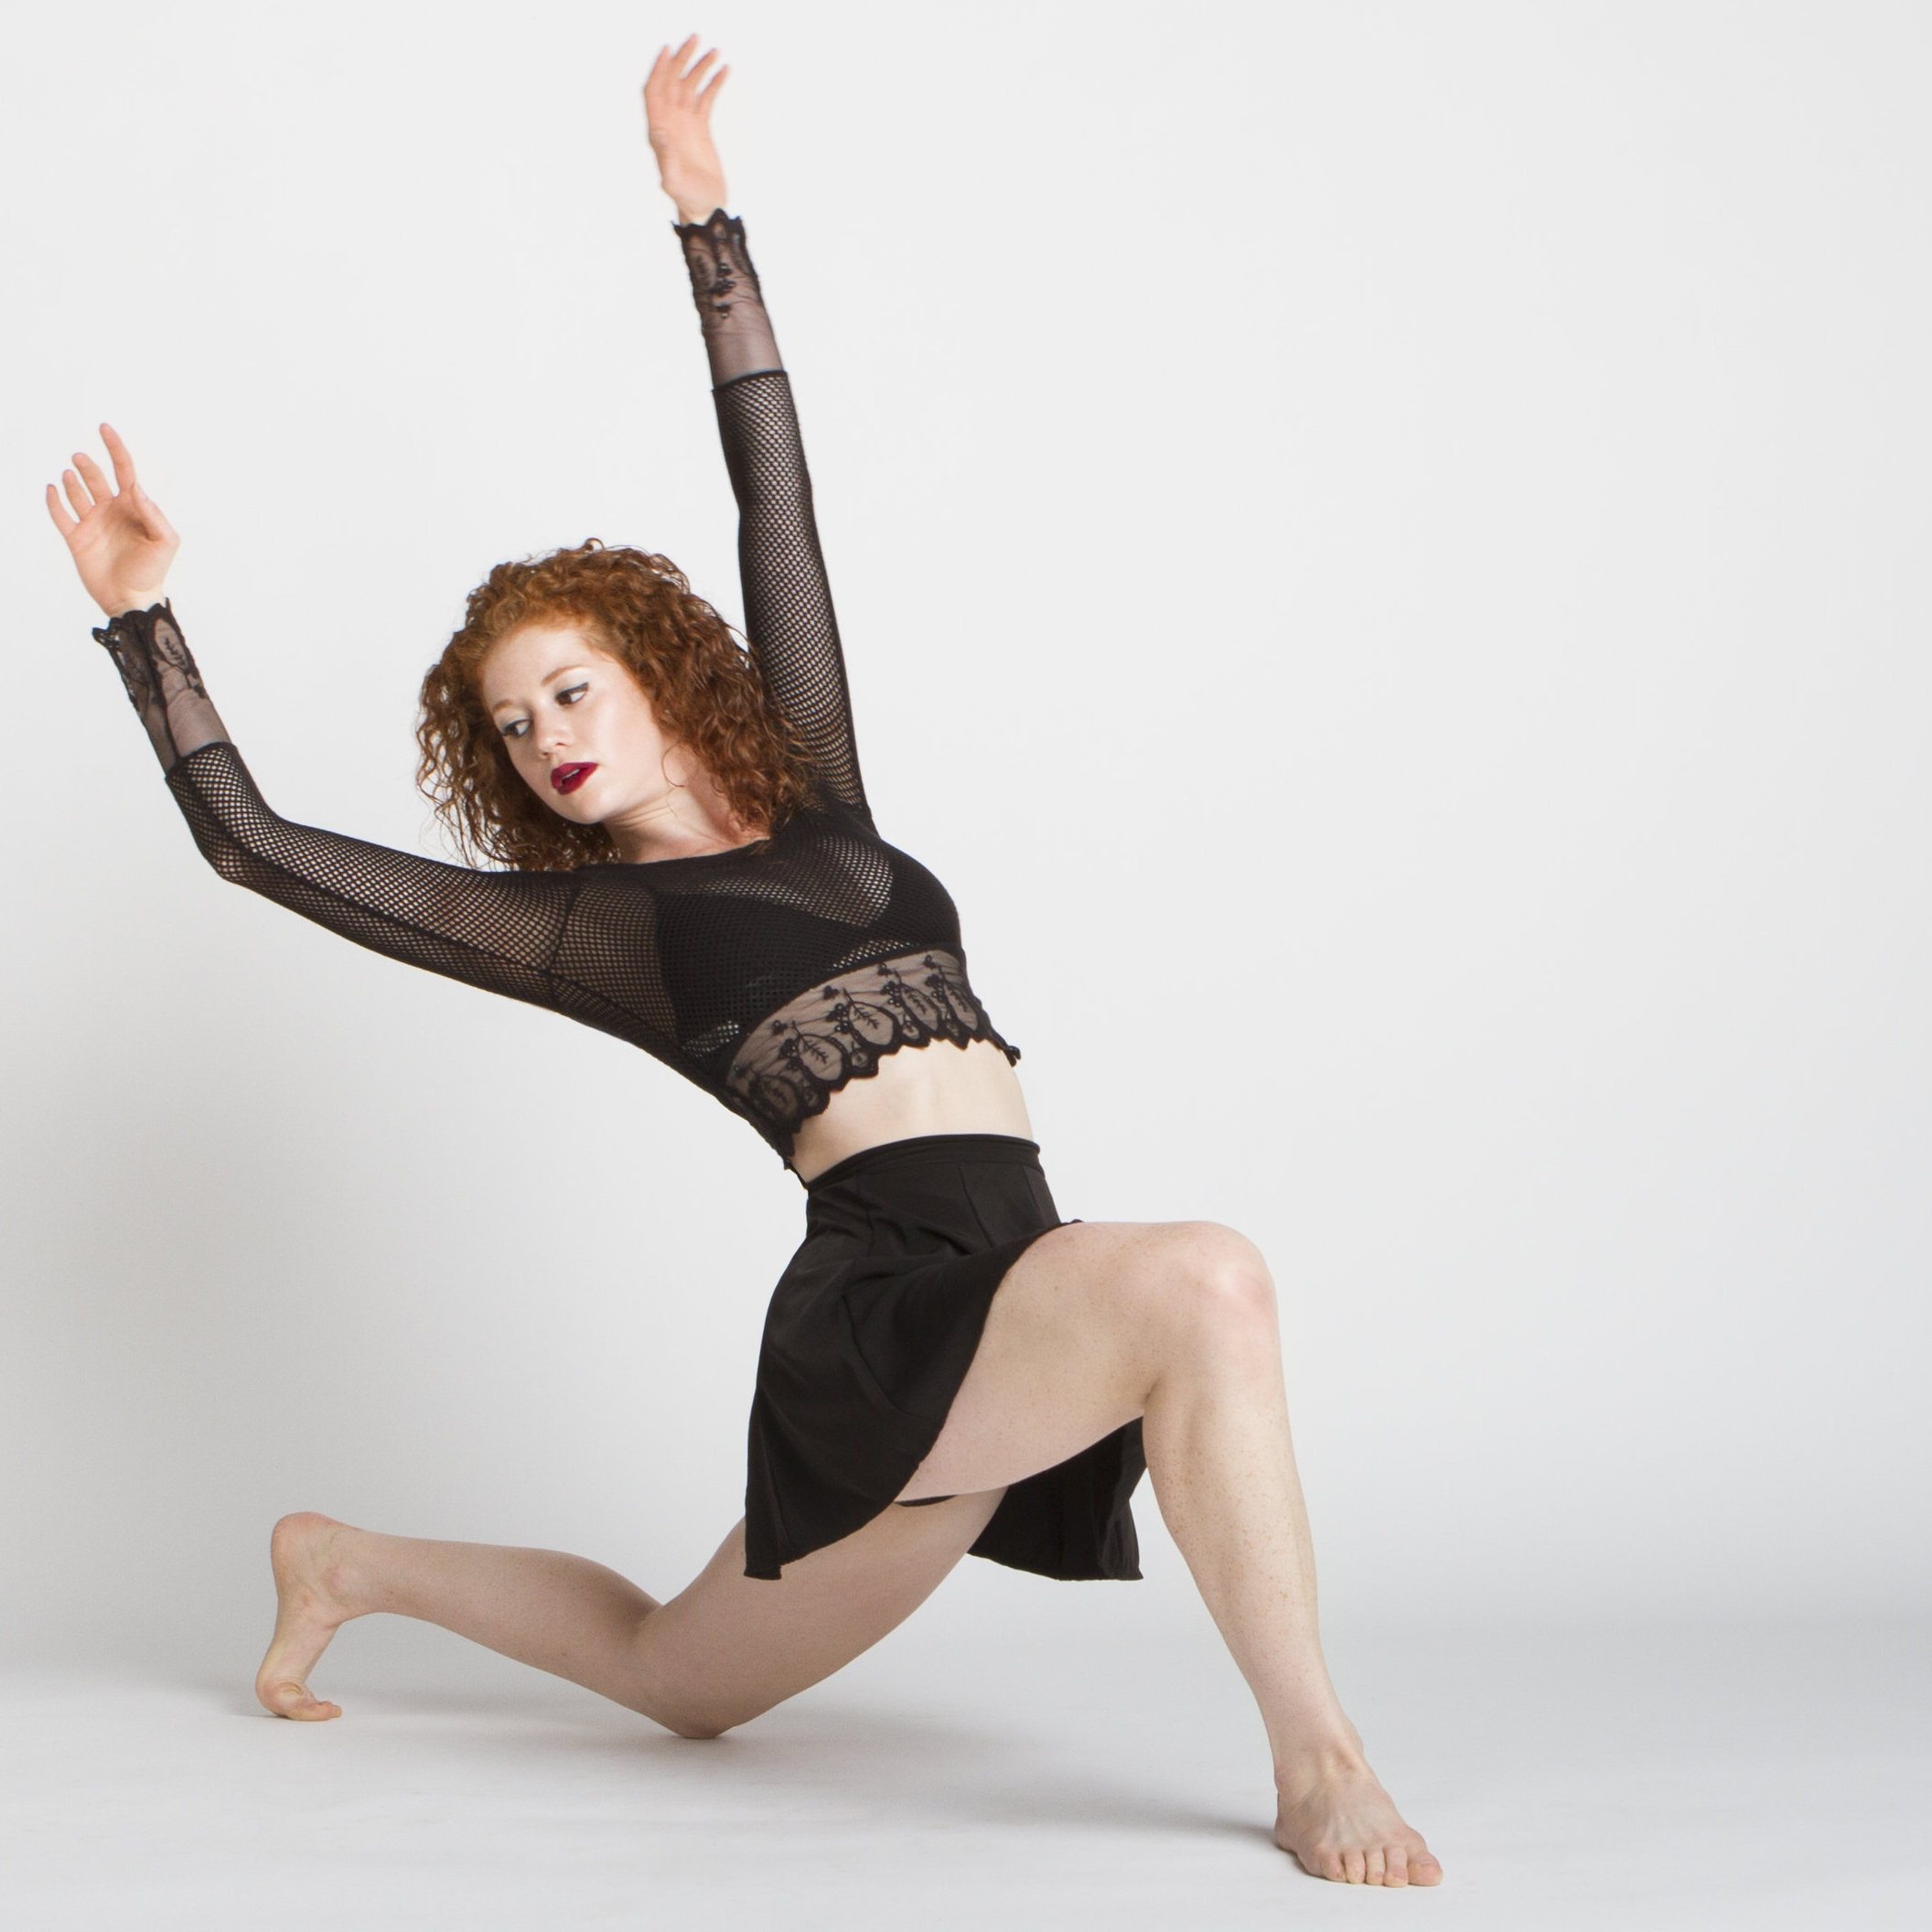 Jessica Aronoff - earned her BFA in Dance from NYU Tisch School of the Arts. She has performed works by Gus Solomons Jr., Deborah Jowitt, Keigwin + Company, David Dorfman Dance, Patricia Hoffbauer, Brian Thomas, Rachelle Rak, JT Horenstein, Adam Cates, Eryc Taylor, and Derek Mitchell. Jessica has danced at Danspace at St. Marks Church, Alvin Ailey, Symphony Space, Peridance Capezio Center, La Mama, The Skirball Center, Dixon Place, and Lincoln Center for NYC Fashion Week. Jessica has had the honor of dancing back-up for Paula Abdul, performing at a TED Talks TEDx event, and was dance captain in the Off-Broadway production of The Portal at Minetta Lane Theater. She is enjoying life as a freelance dancer, dance teacher, choreographer, and fitness trainer for NW Method by Nicole Winhoffer. Jessica is represented by McDonald Selznick Associates and is so excited to continue dancing, creating, and inspiring with her J CHEN PROJECT family this season! Jessica joined J CHEN PROJECT in 2011.